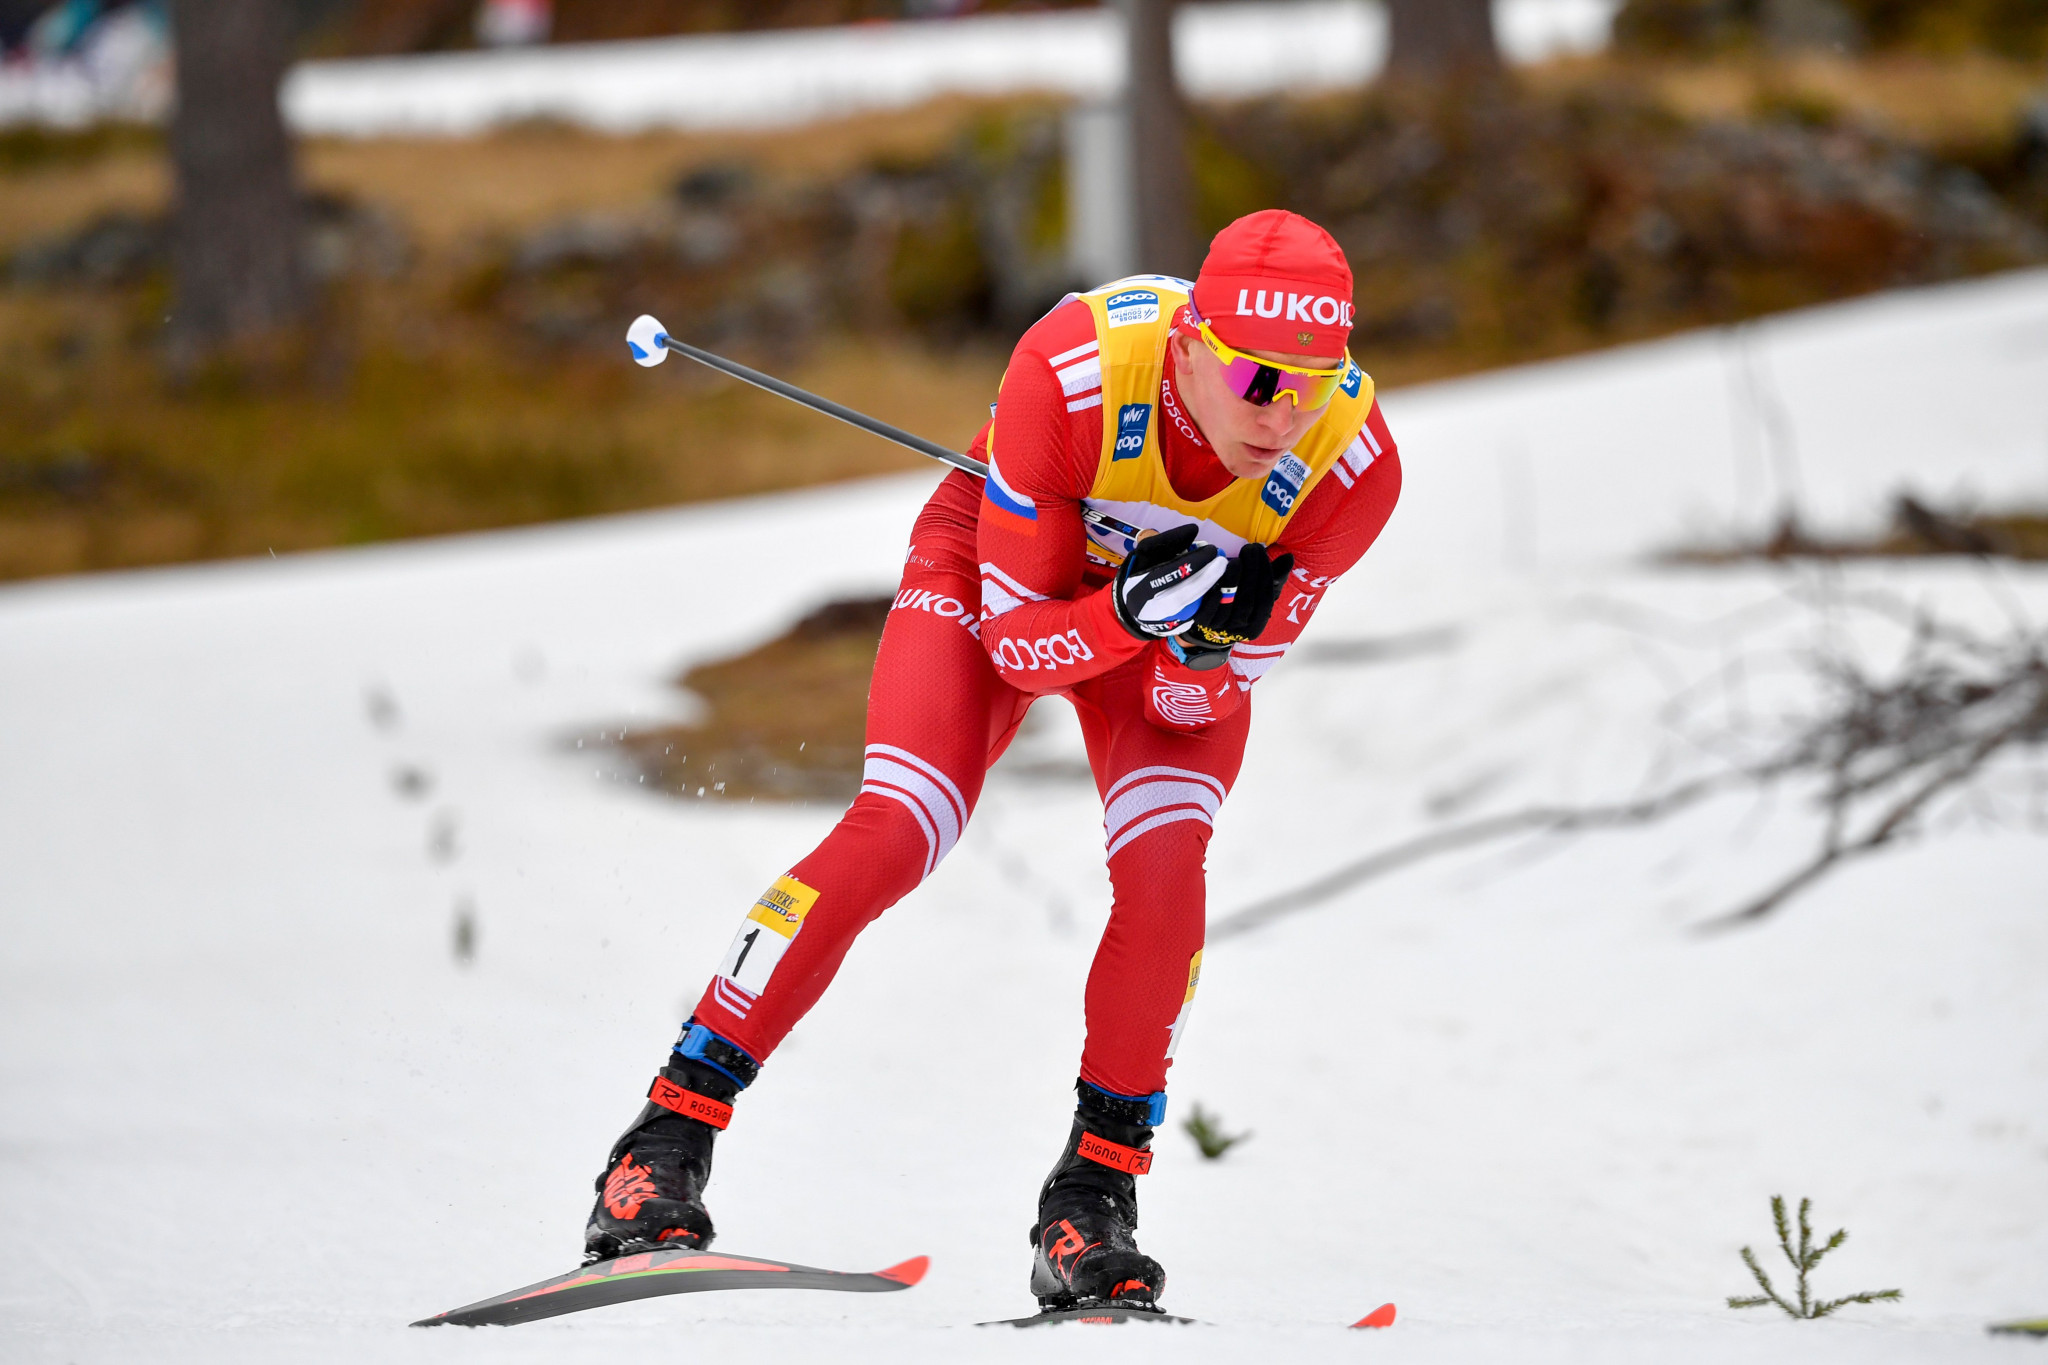 Alexander Bolshunov could take a step closer to winning the overall men's World Cup title ©Getty Images